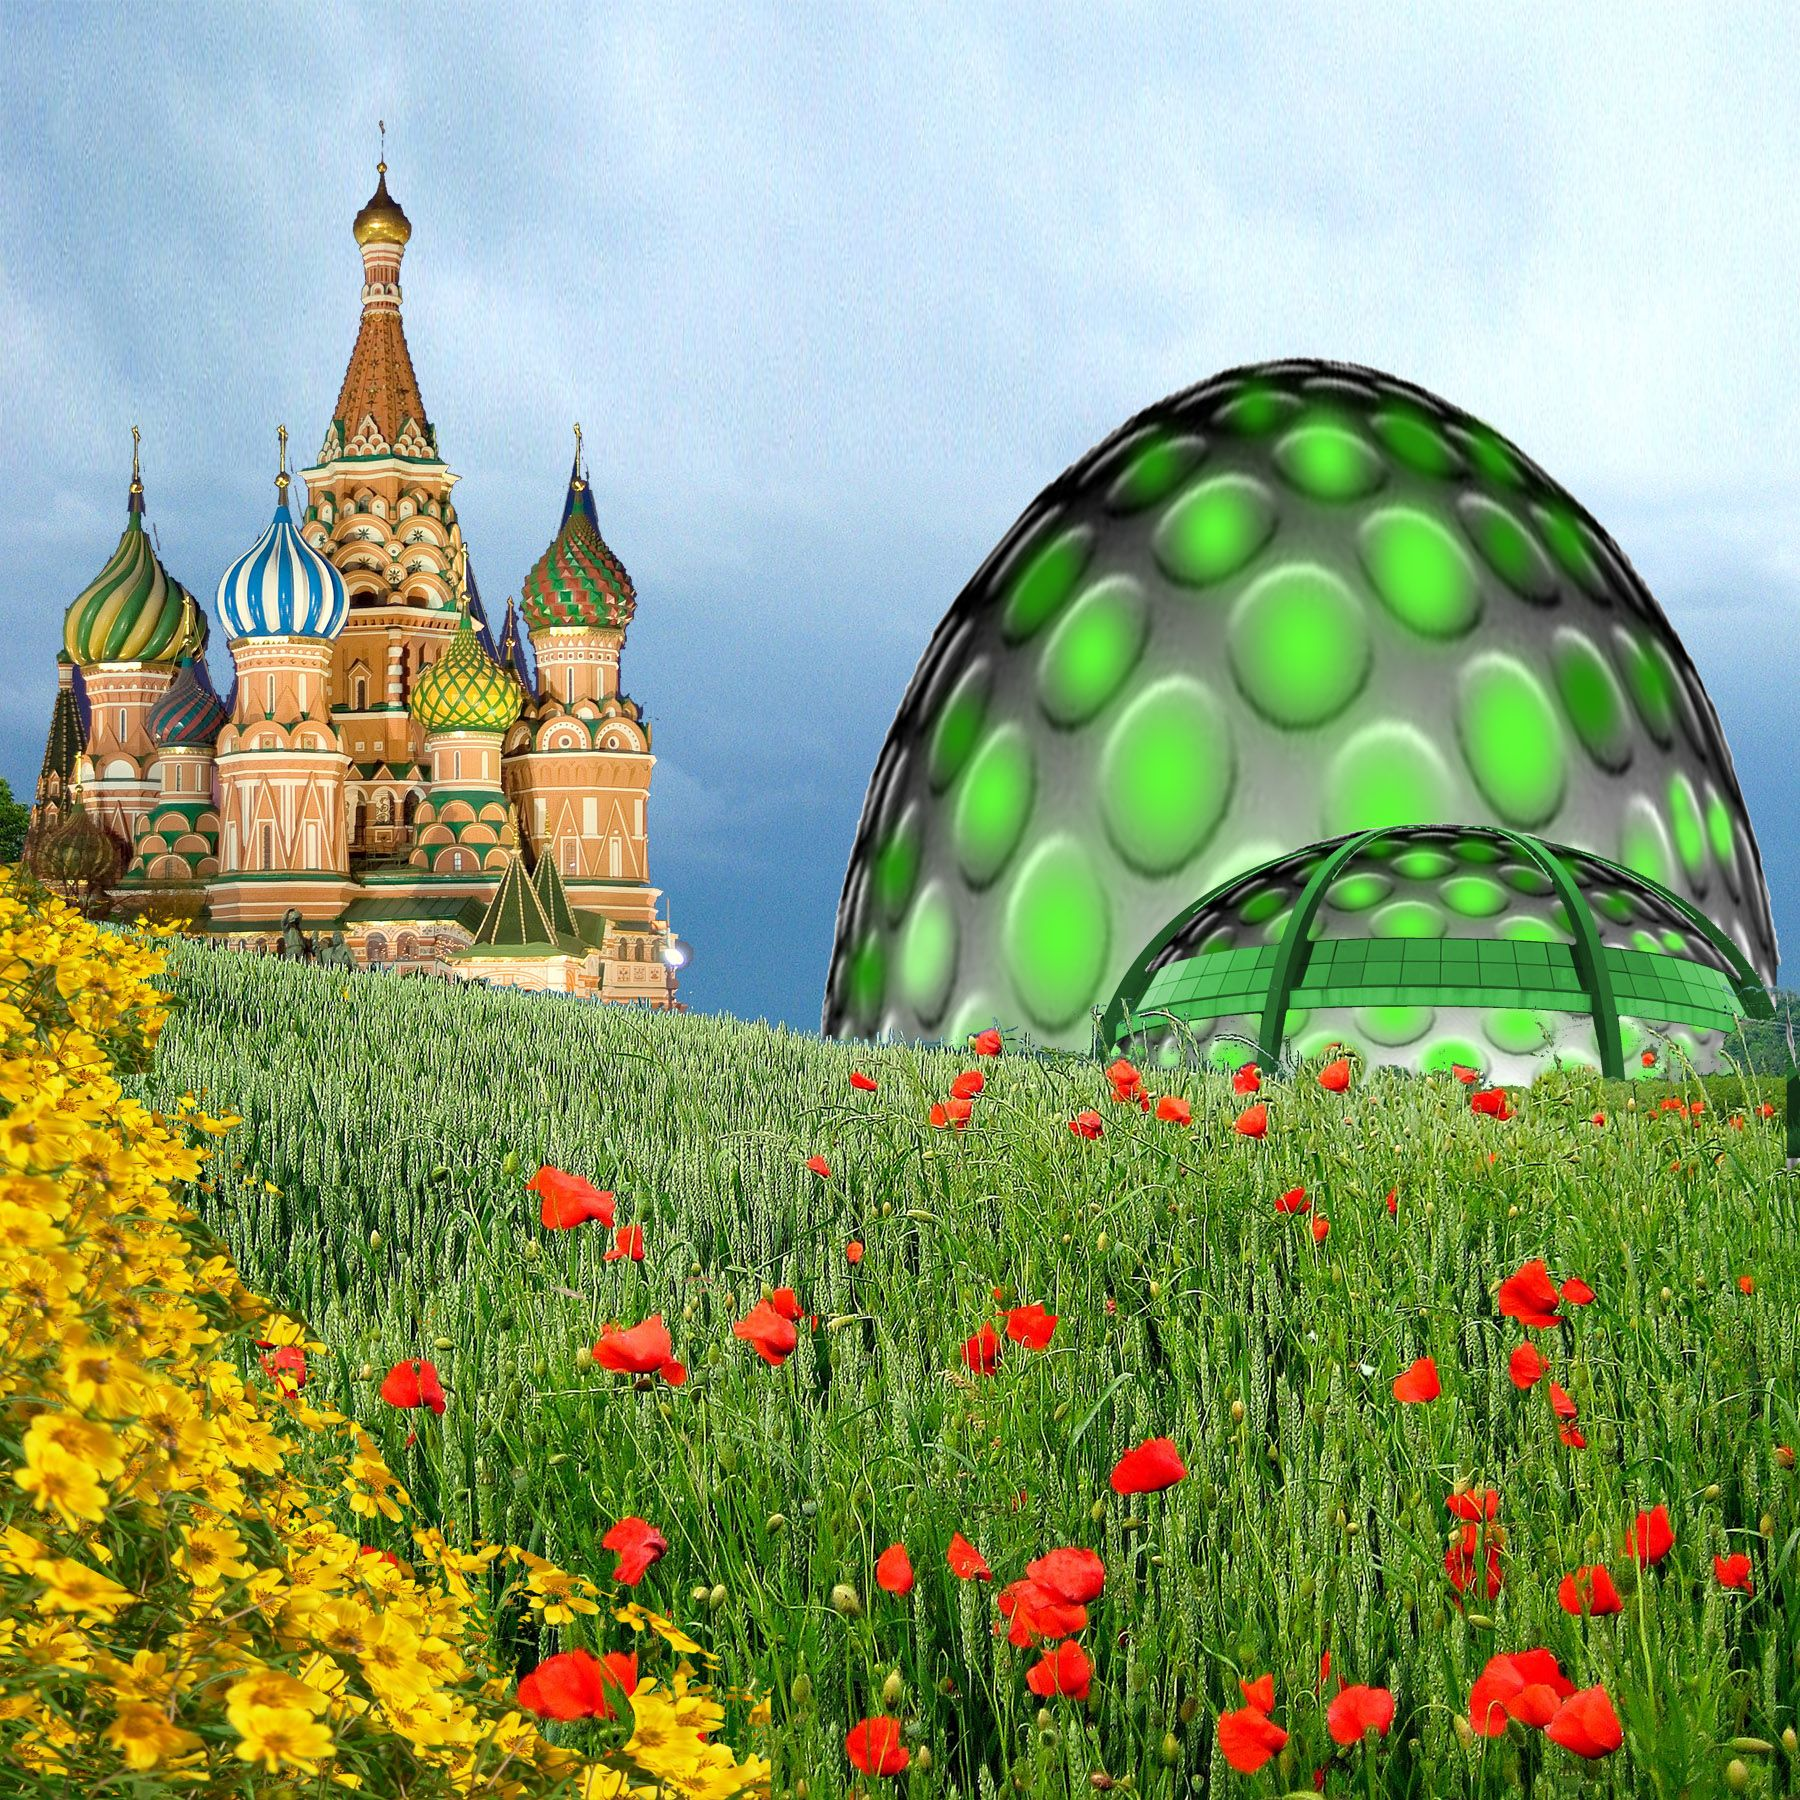 Dome House Futuristic: Past And Future Domes Picture, By DigitalPro For: Dome